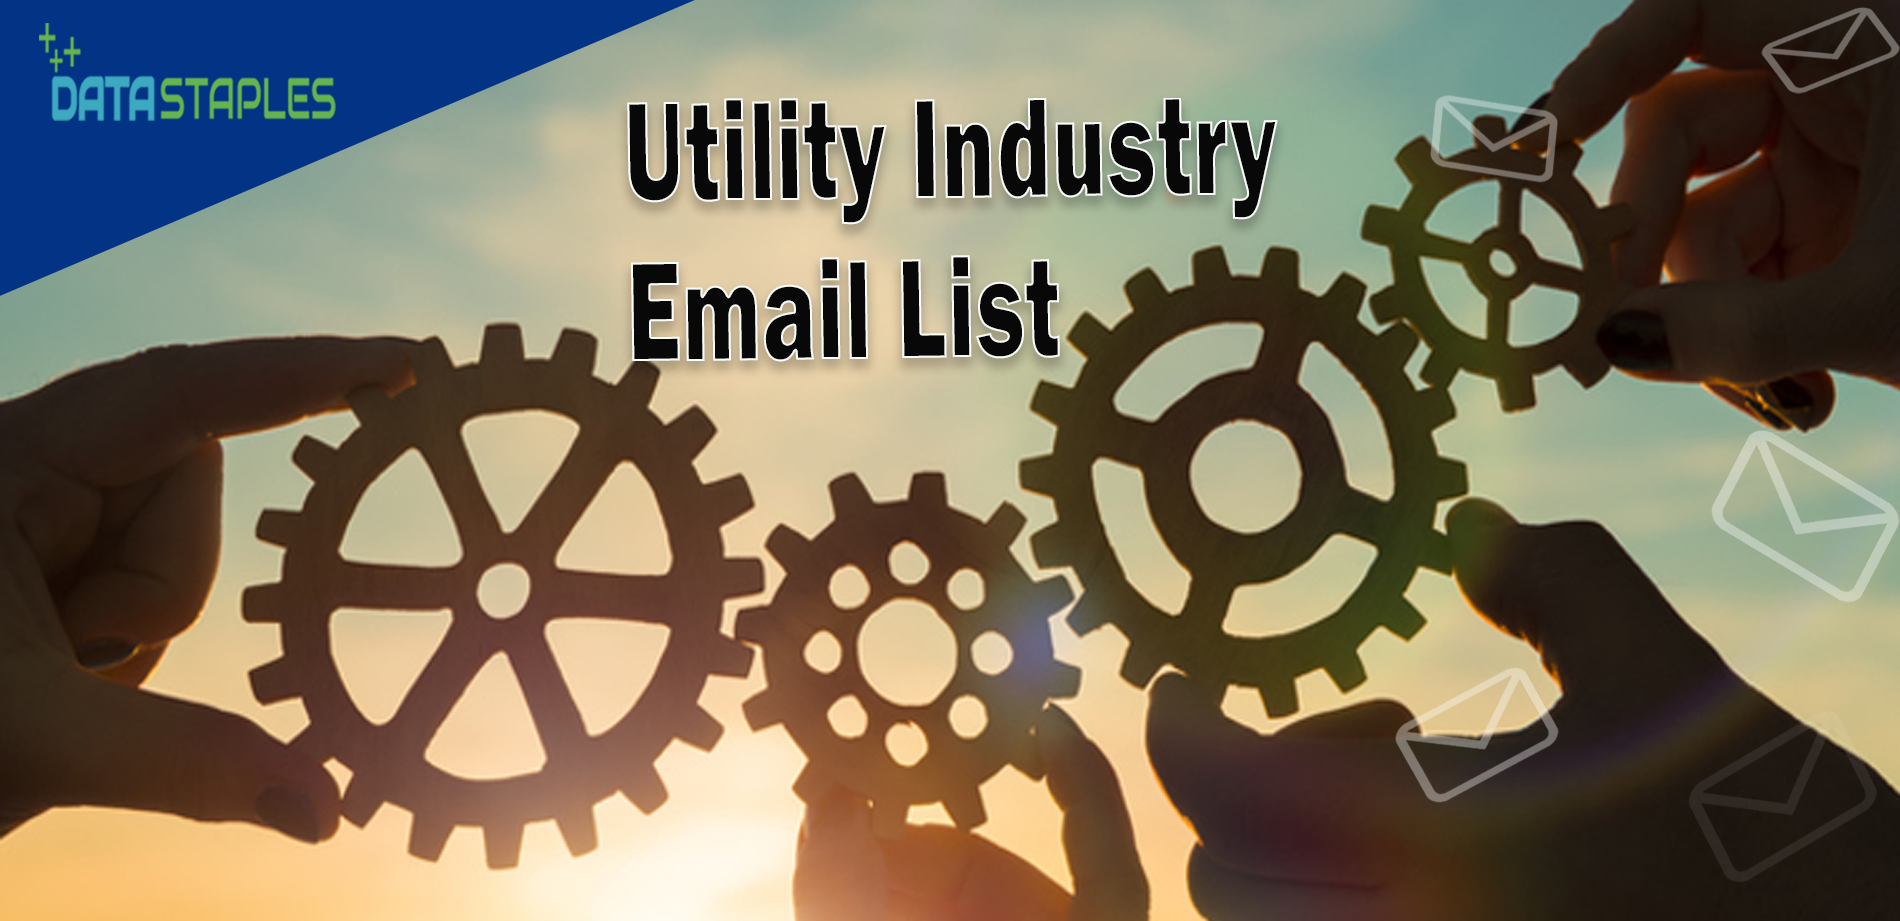 Utility Industry Email List | DataStaples